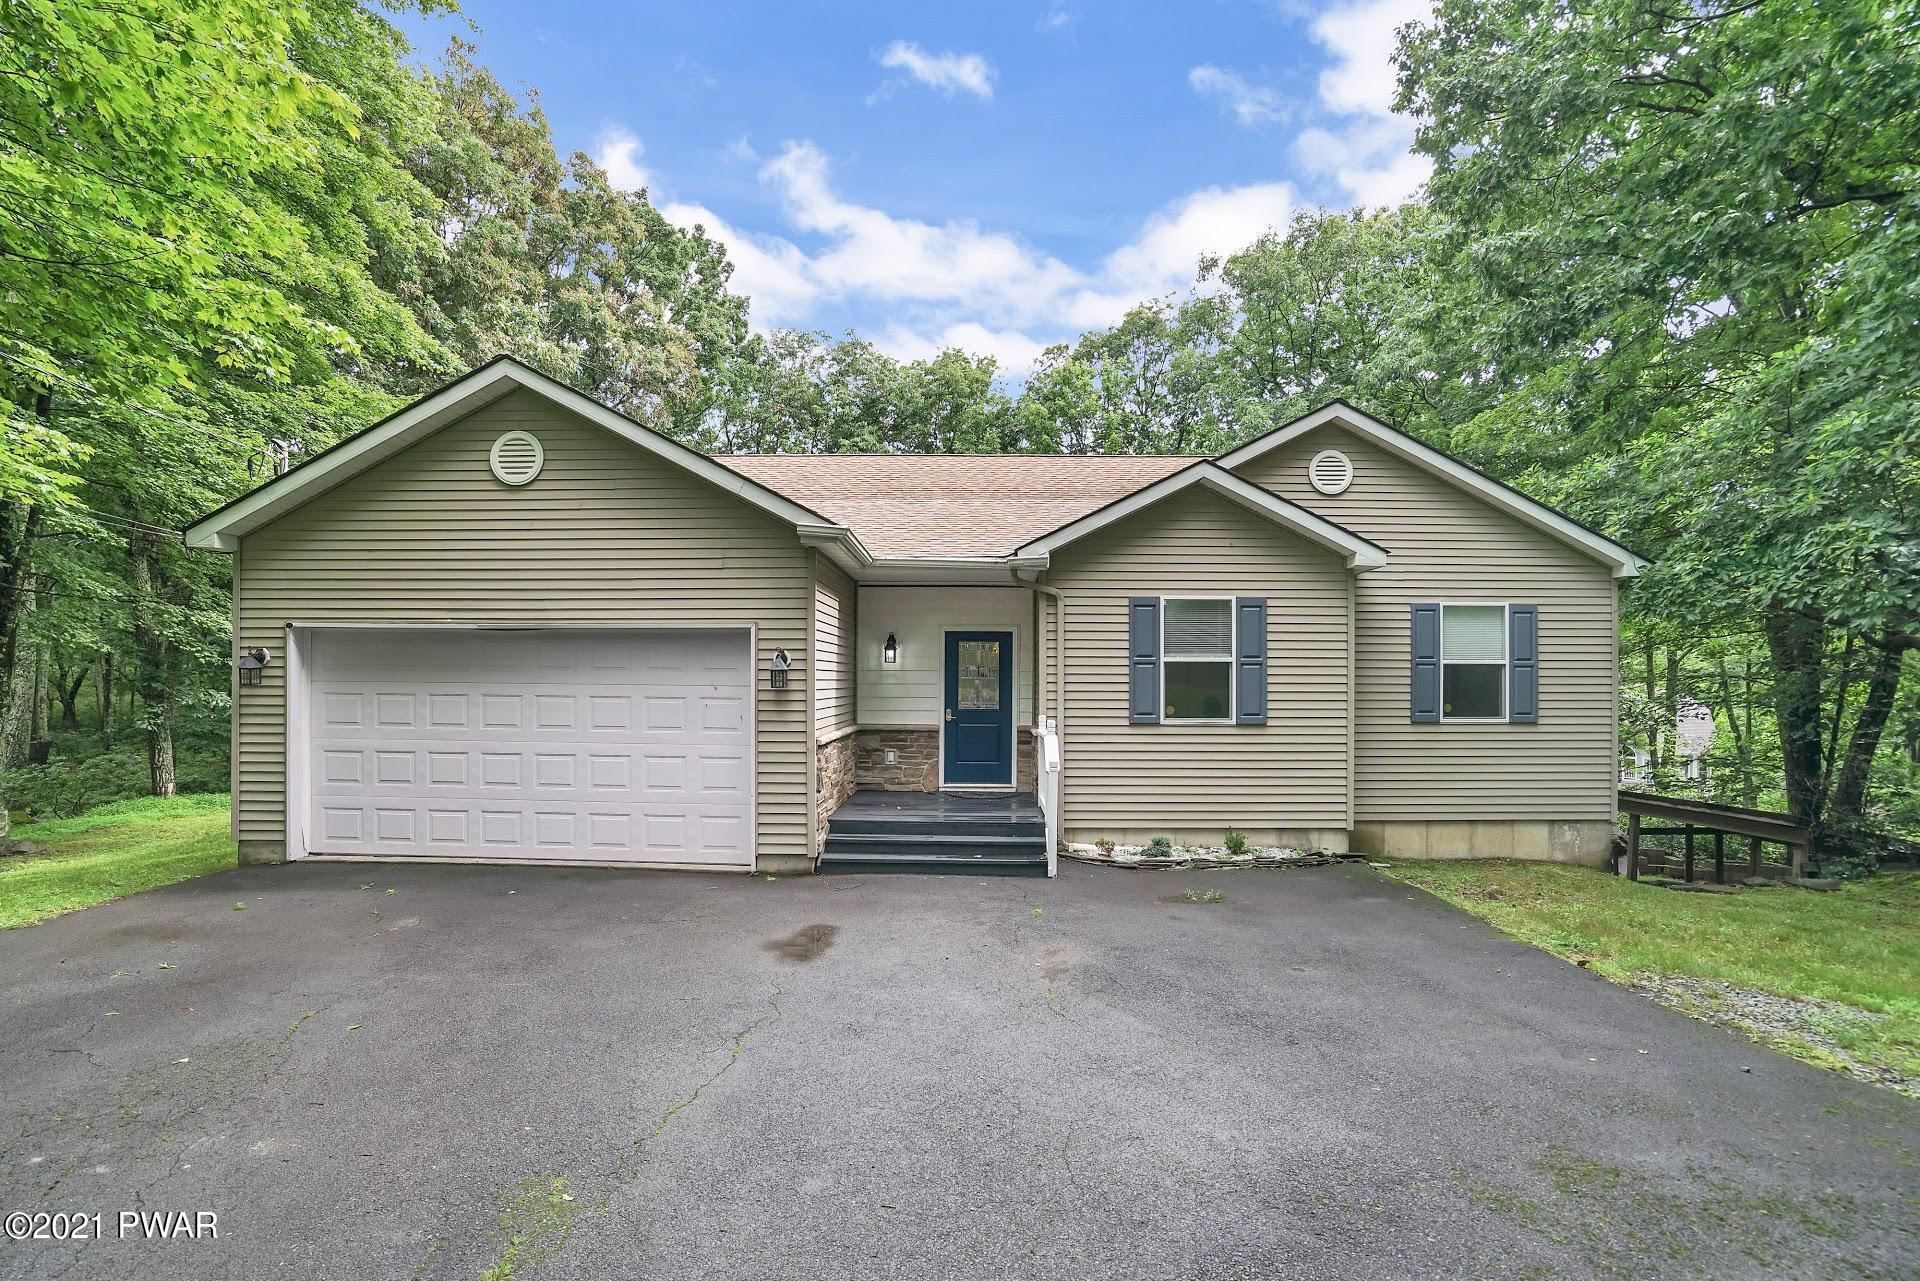 Photo of 803 Placer Ct, Hawley, PA 18428 (MLS # 21-2695)